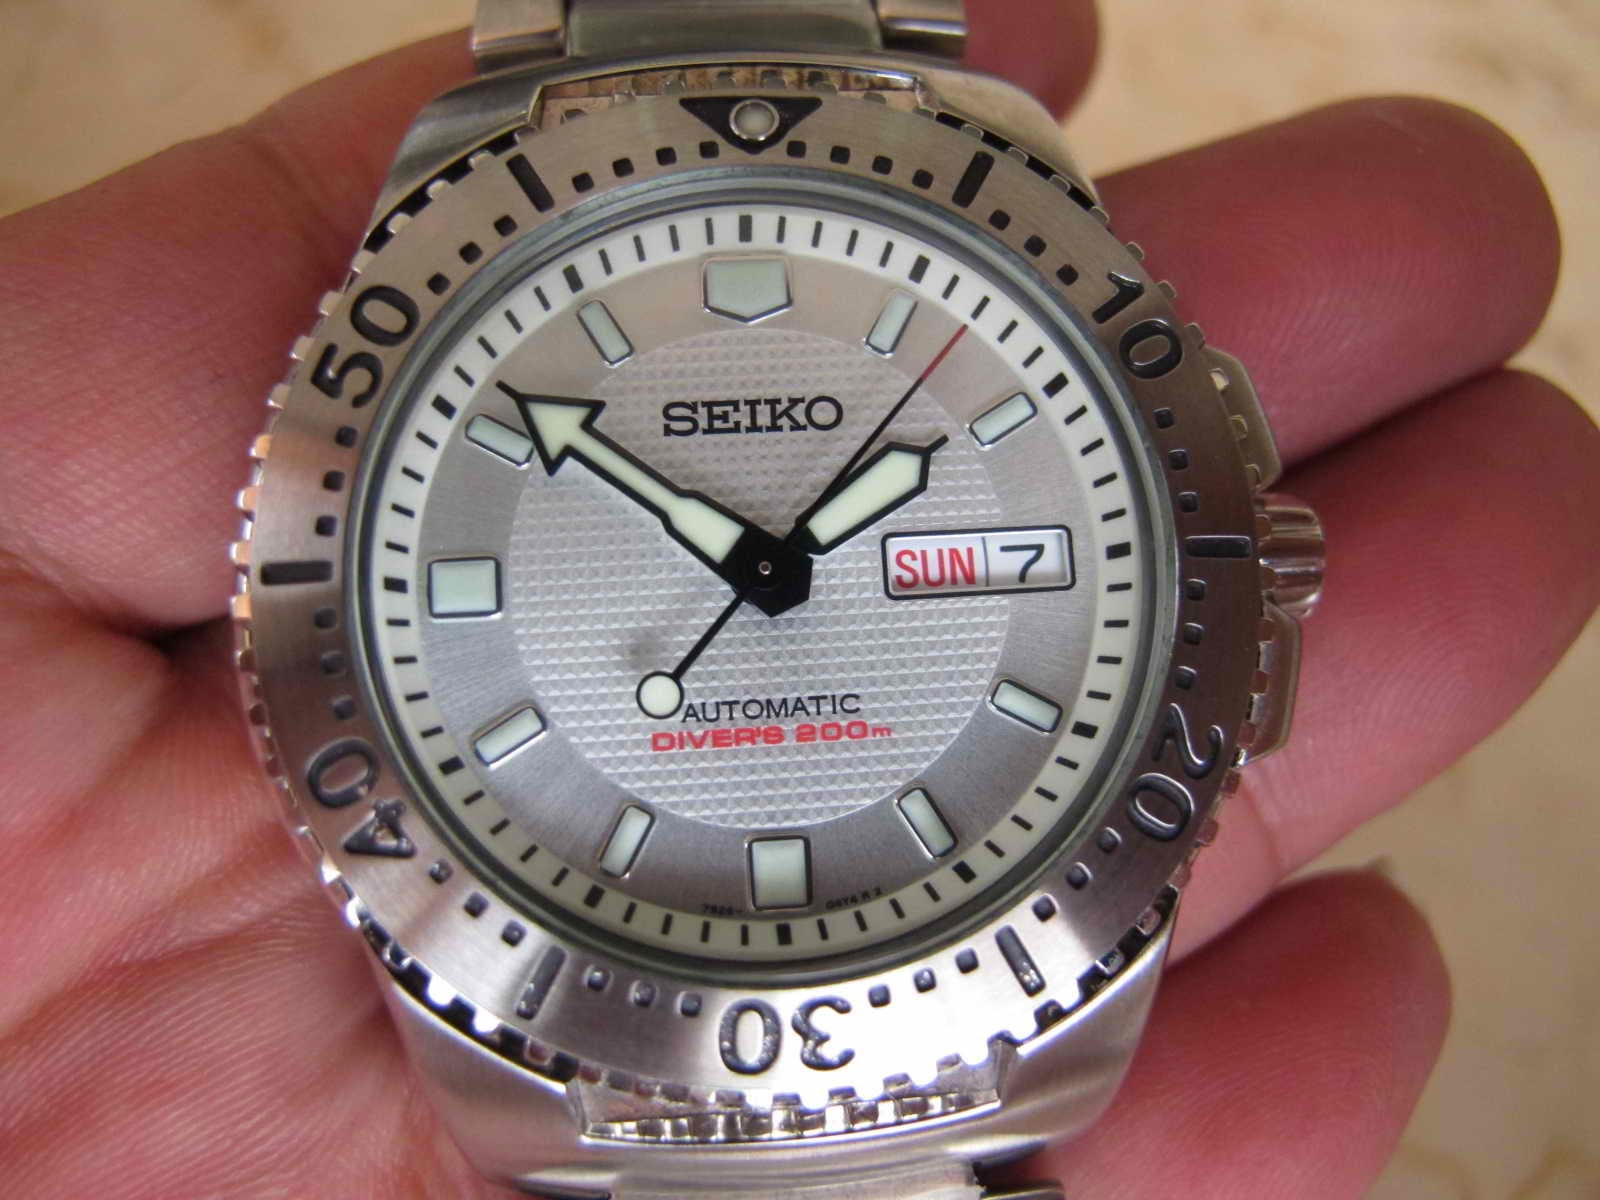 Maximuswatches Jual Beli Jam Tangan Second-Baru Original-Koleksi Jam  Maximus-www.maximuswatches.com: SEIKO DIVER WHITE KNIGHT - SEIKO DIVER  SKXA47 - AUTOMATIC (SOLD)